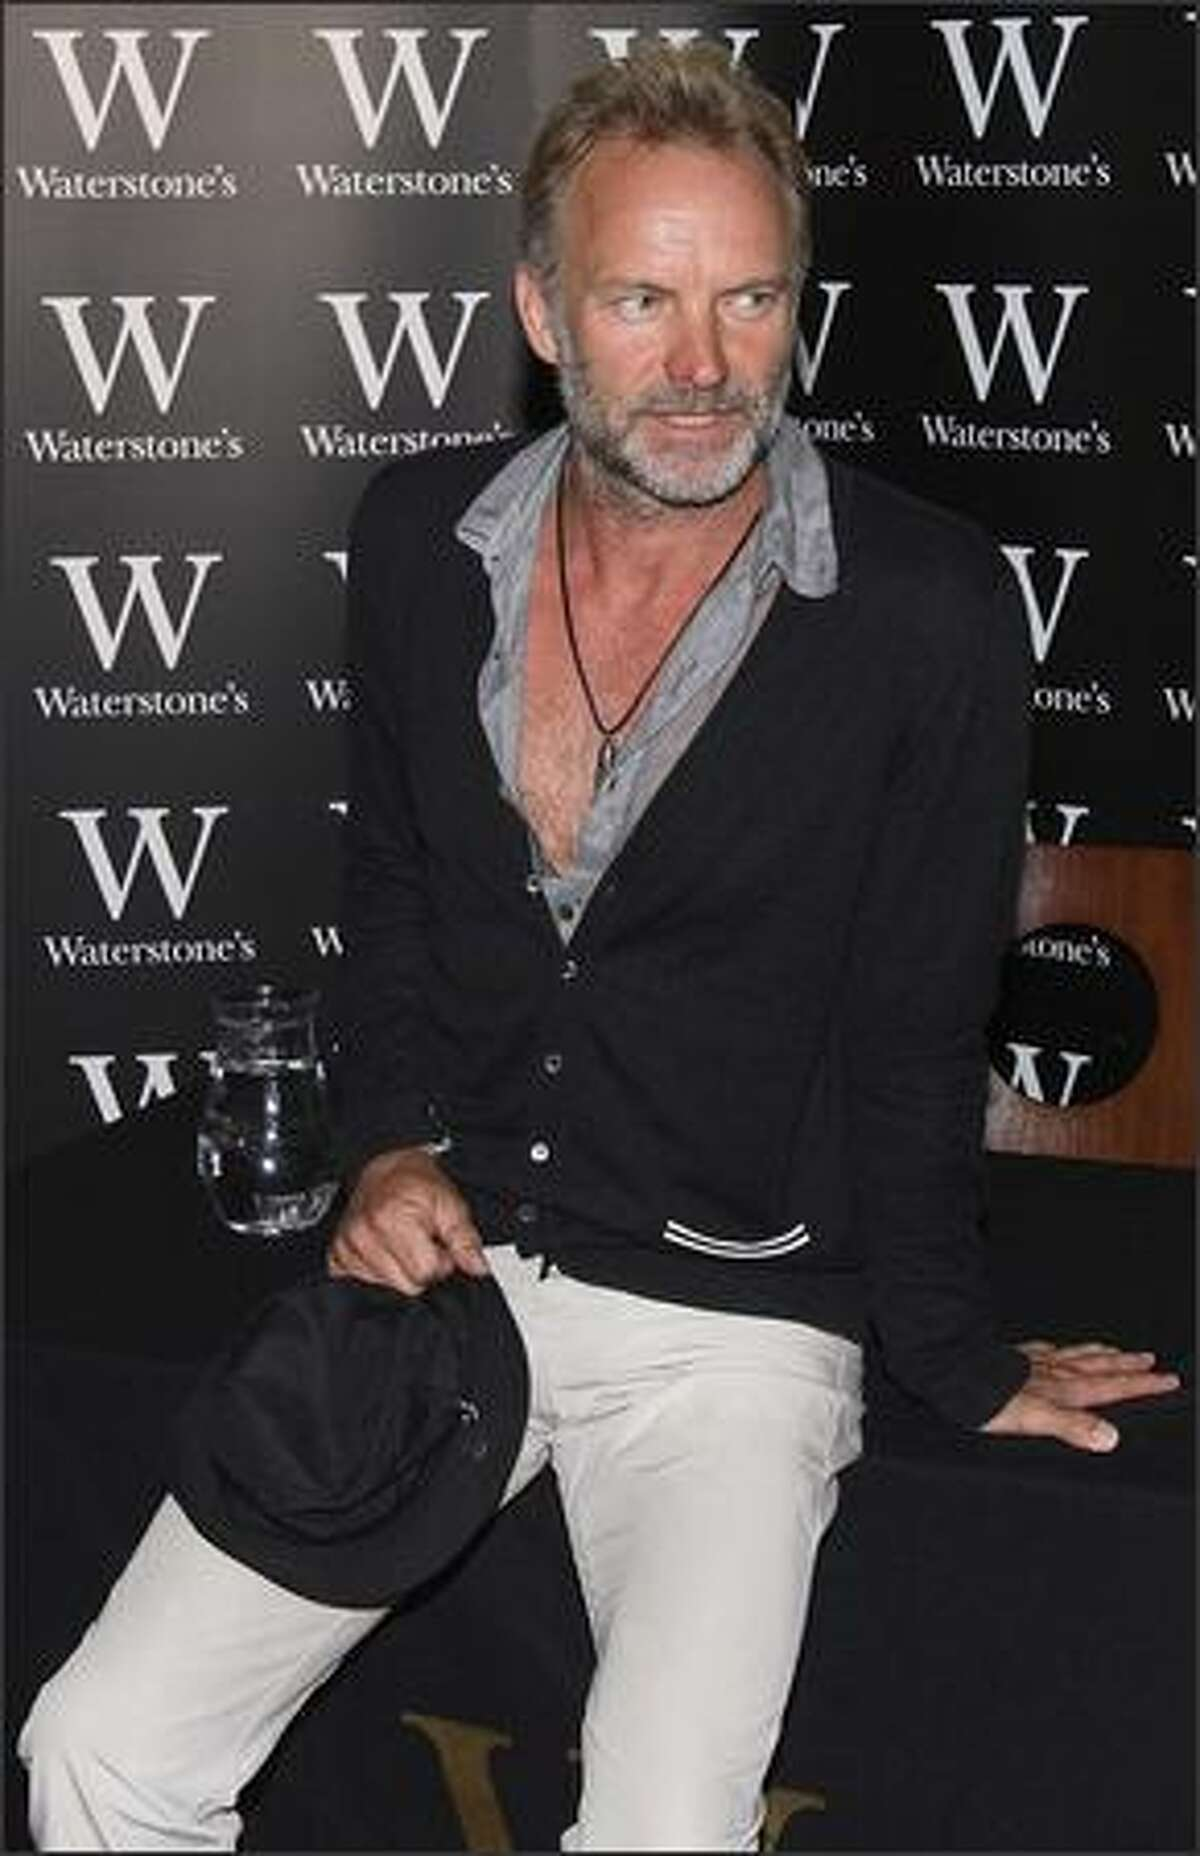 British musician Sting attends a photocall for the release of his new book